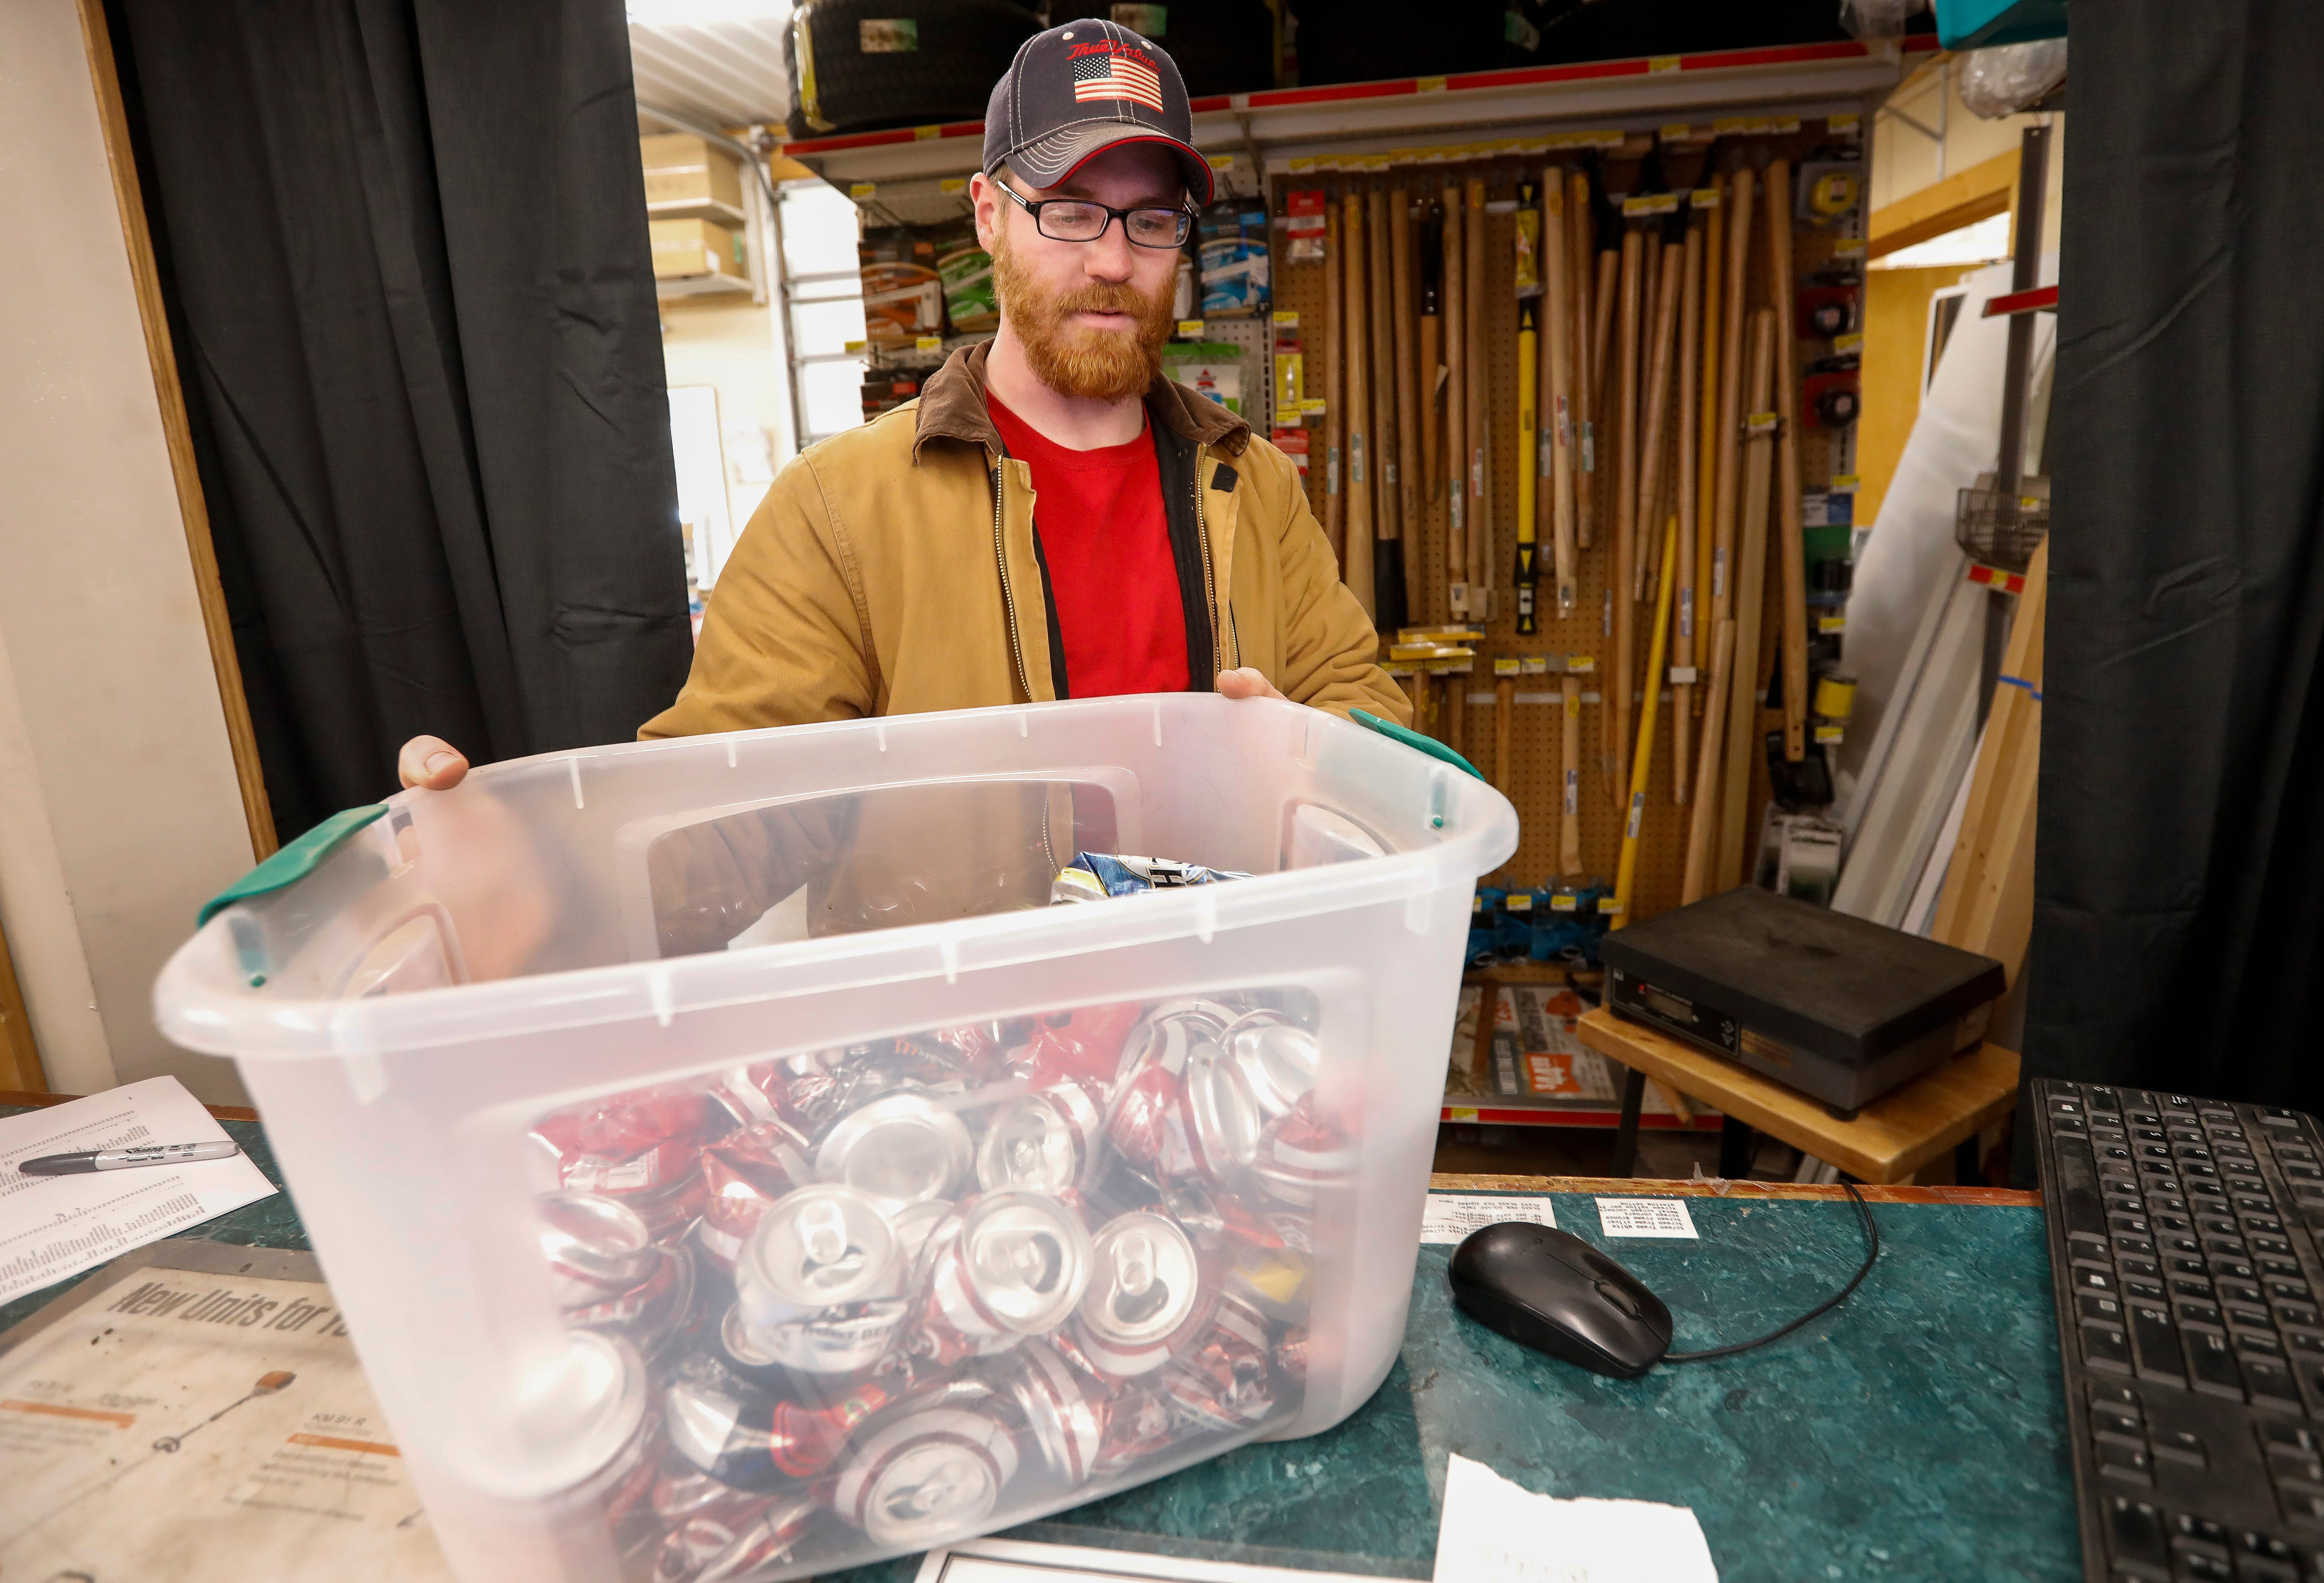 Trevor Renshaw, manager of True Value Hardware in Willard, weighs a bin of aluminum cans at his store on Tuesday, Feb. 5, 2019.